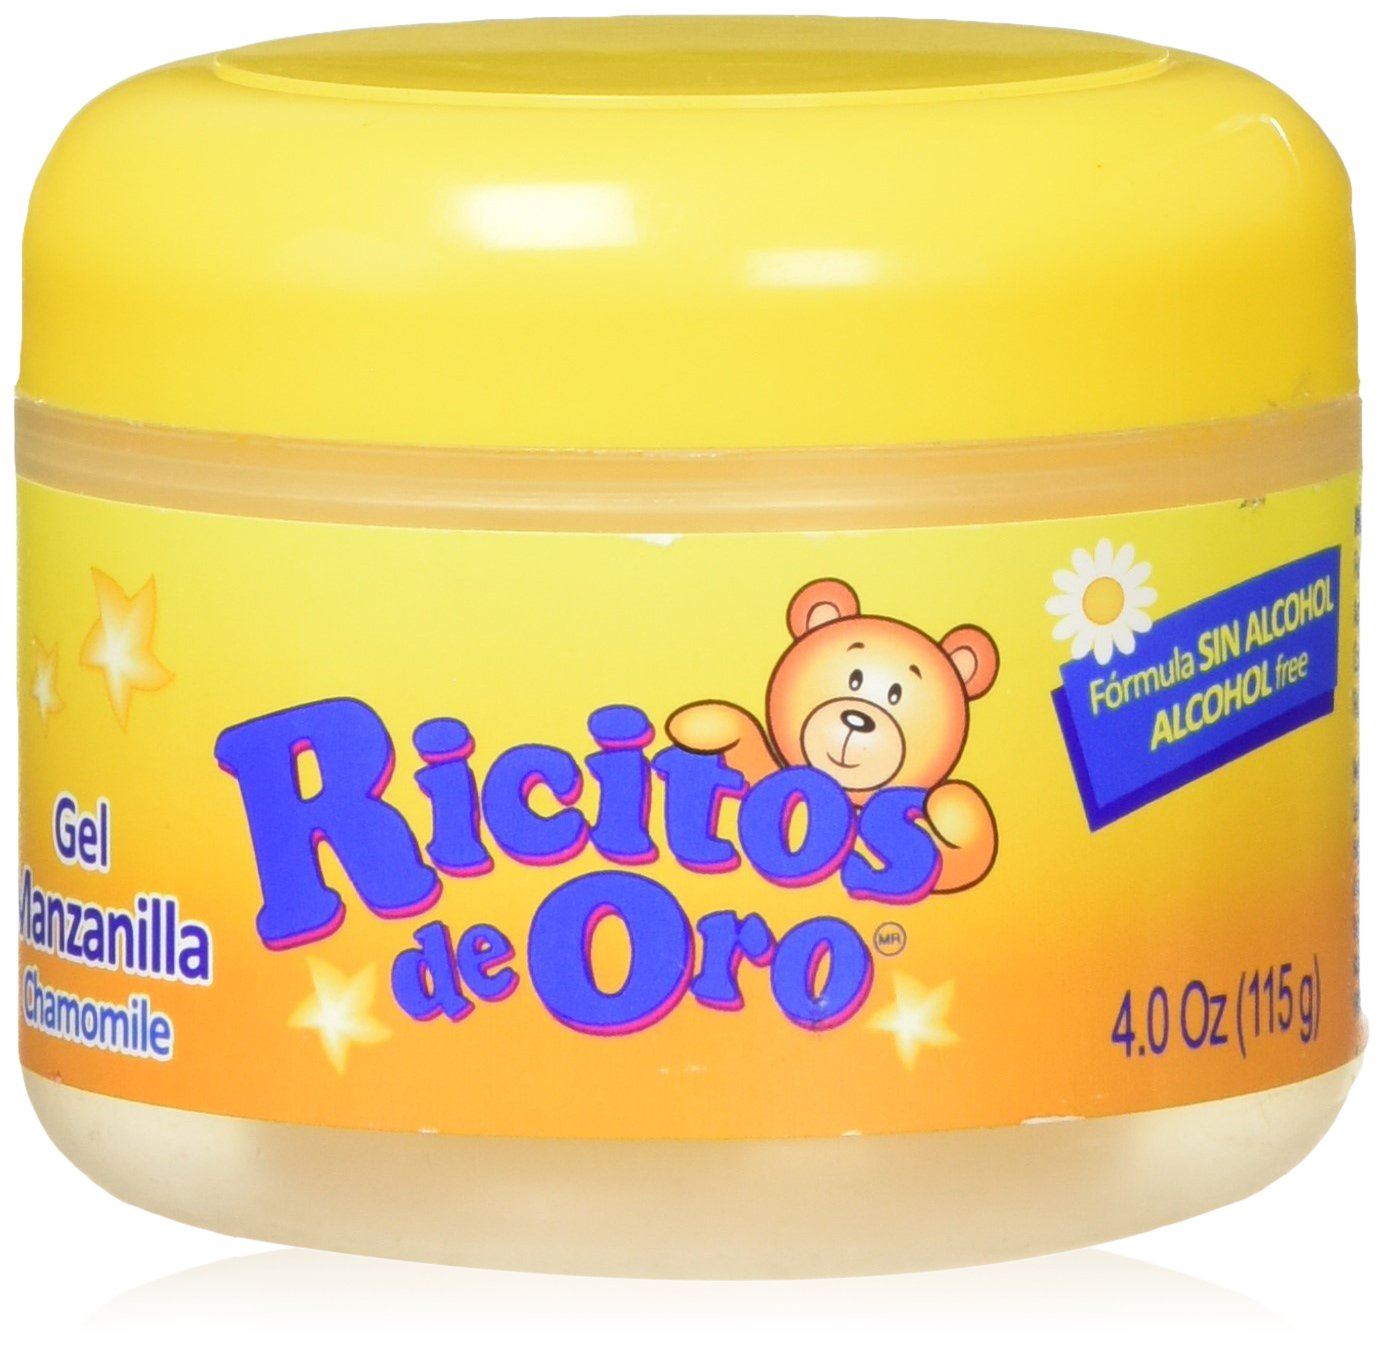 Manzanilla Ricitos de Hair Gel  Alcohol-Free Hair Care Gel for Daily Use, Gentle Gel with Chamomile Extract; 4.0 Ounces